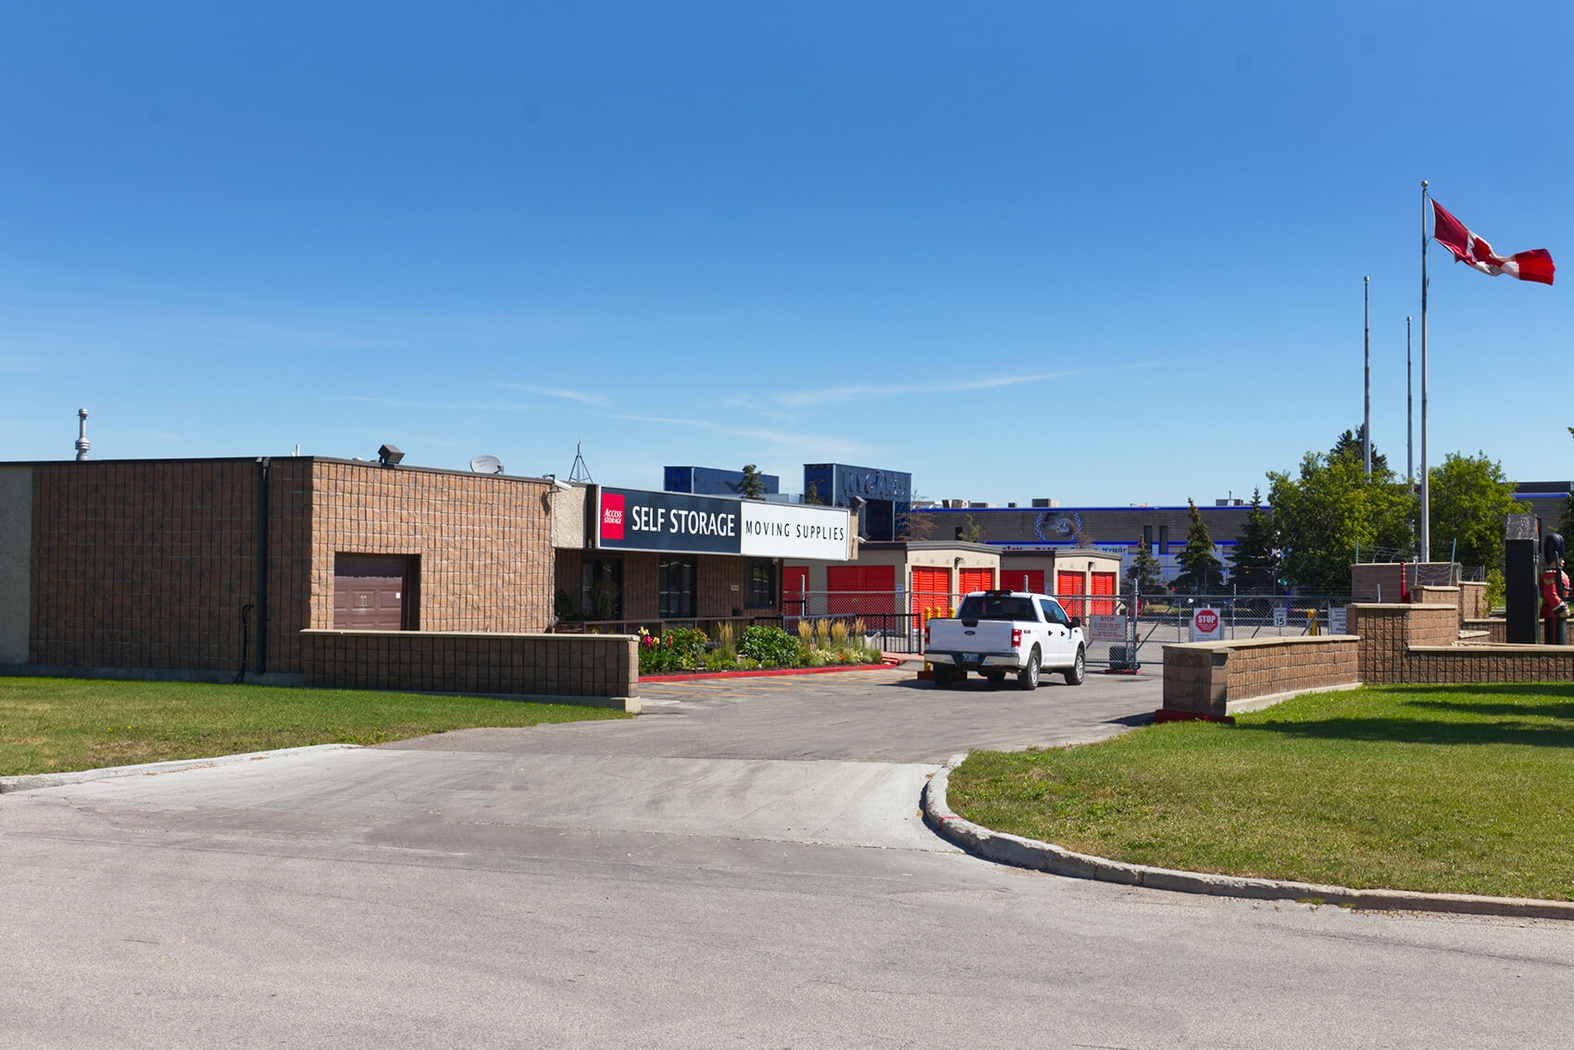 Rent Winnipeg storage units at 11 Paramount Rd. We offer a wide-range of affordable self storage units and your first 4 weeks are free!